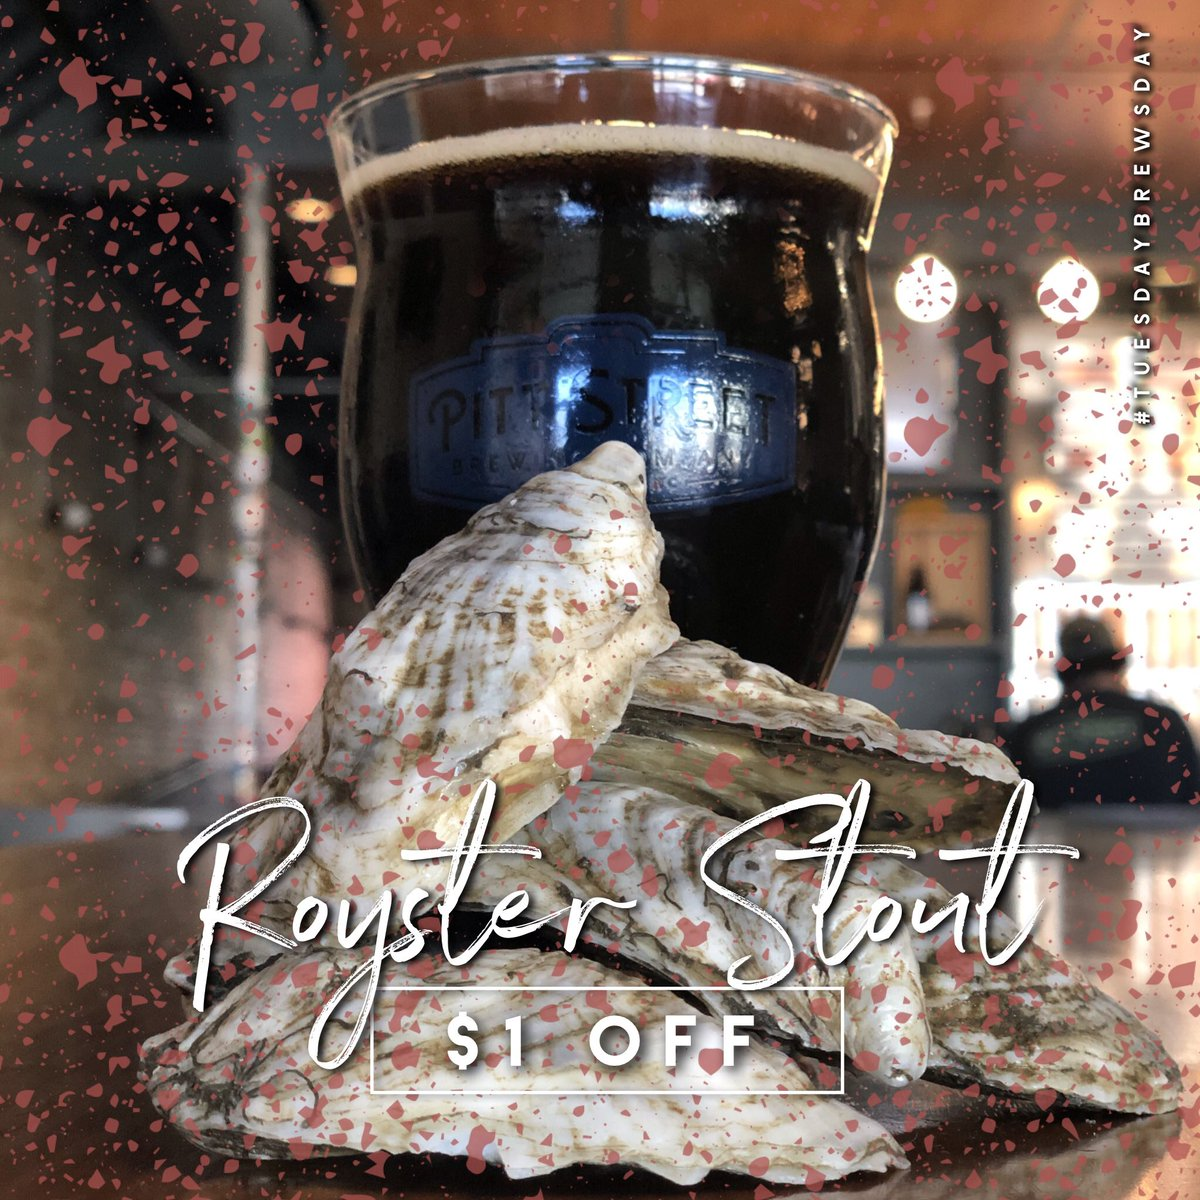 Today is a special #tuesdaybrewsday ! Not only are we releasing the Royster Stout brewed with farm raised oysters, Tabasco, lemon juice and cayenne pepper.. but it's also $1 off! Come celebrate our head brewer and get $1 off any beer and 25% off any canned beer! #roysterstout